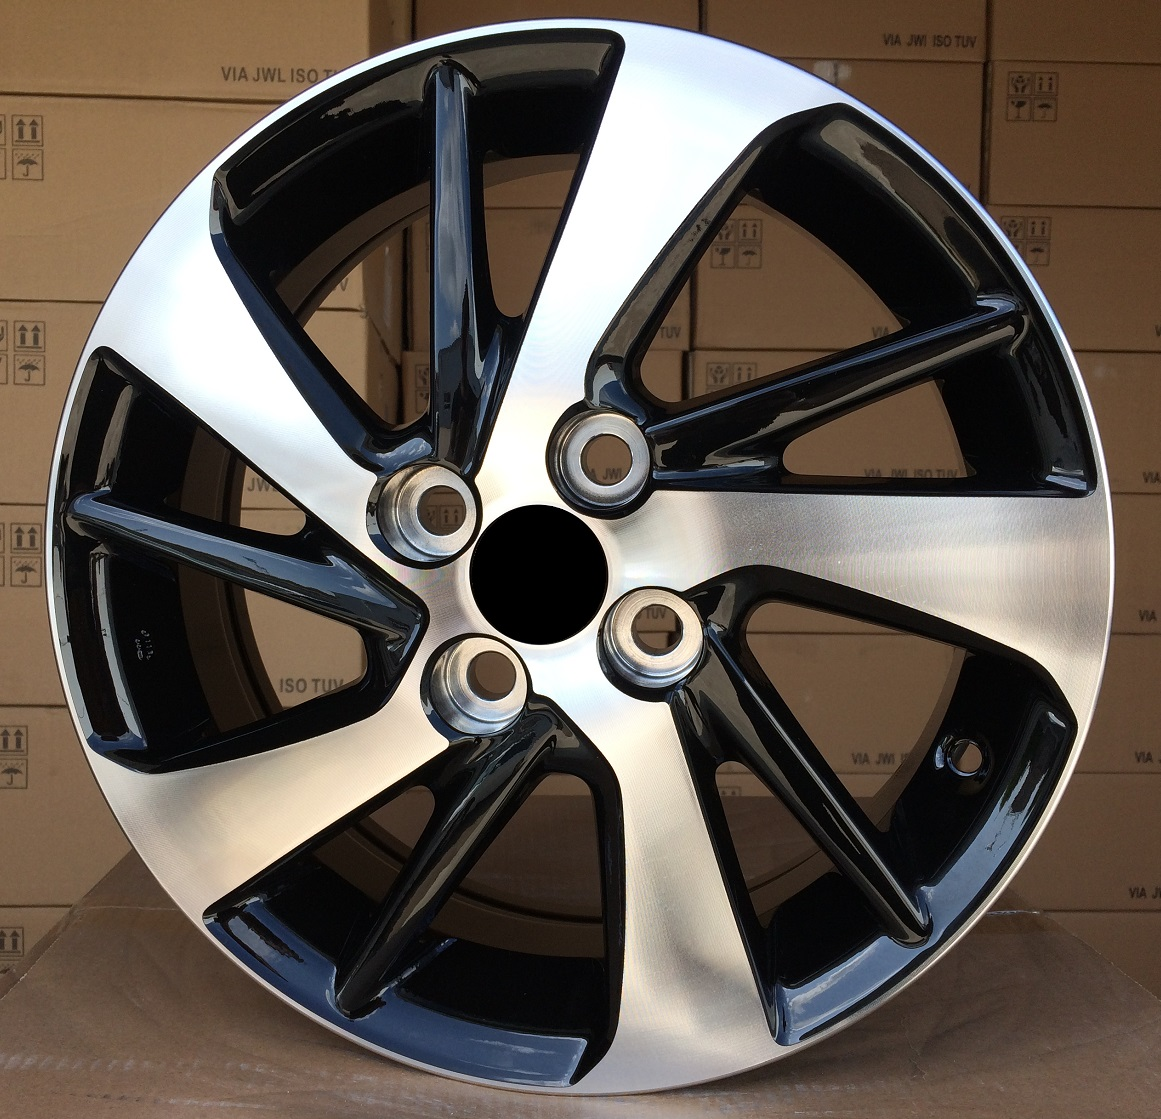 T15X5.5 4X100 ET45 54.1 TL0458NW (XFE146) MB+POWDER COATING RWR TOY (+2eur) ()## 5.5x15 ET46 4x100